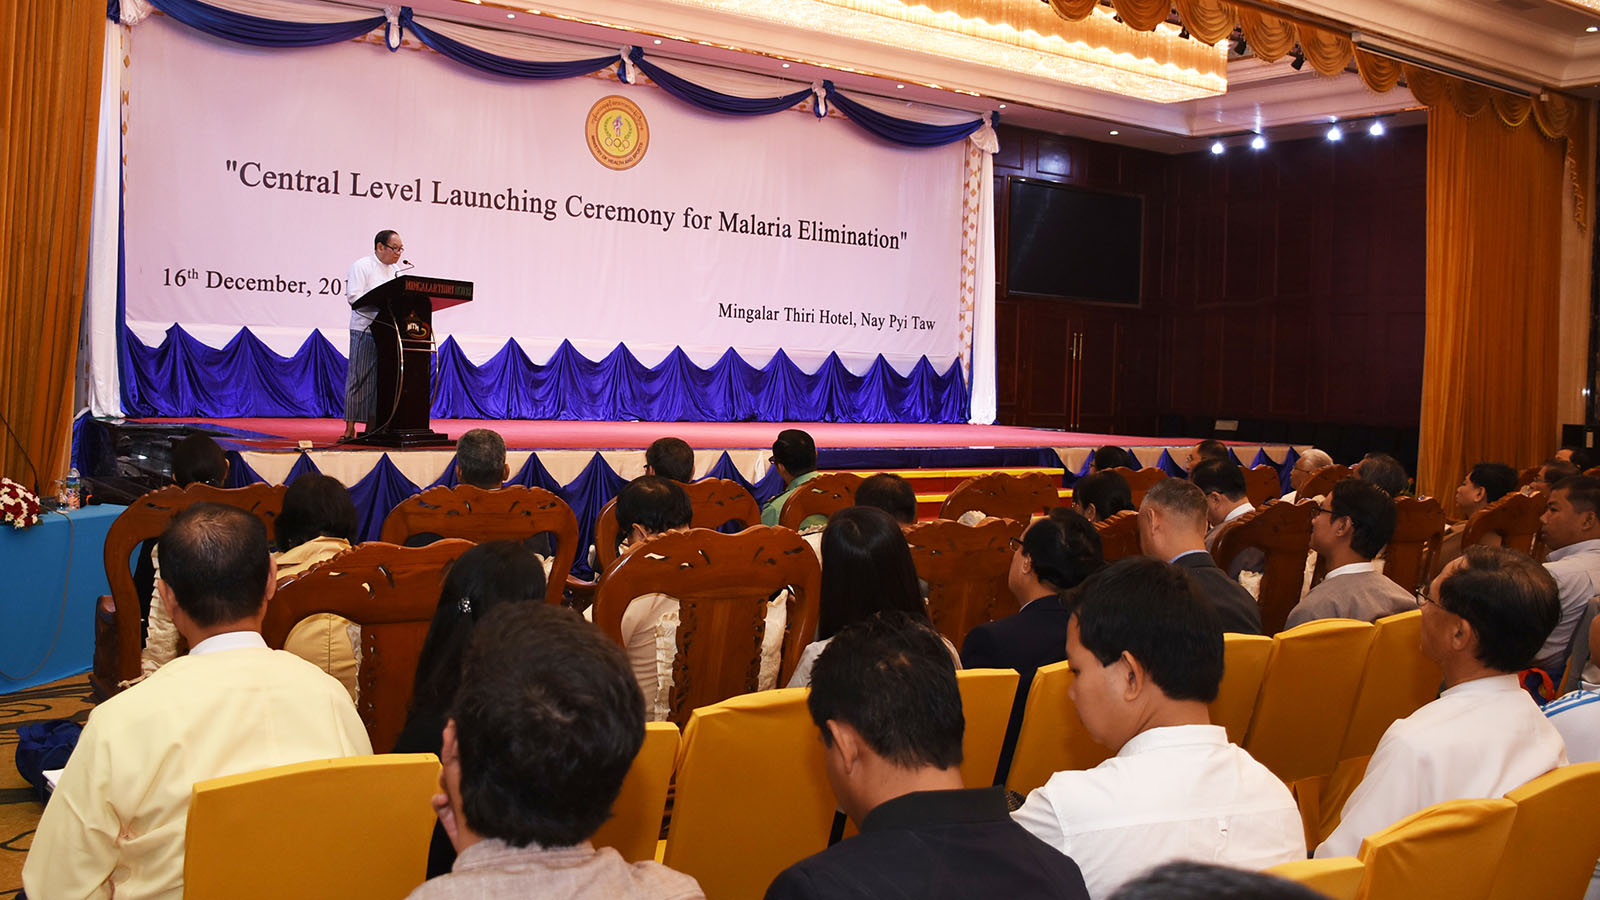 """Union Minister Dr Myint Htwe delivers a speech at the """"Central Level Launching Ceremony for Malaria Elimination"""" at the Mingalar Thiri Hotel, Nay Pyi Taw, yesterday.photo: MNA"""